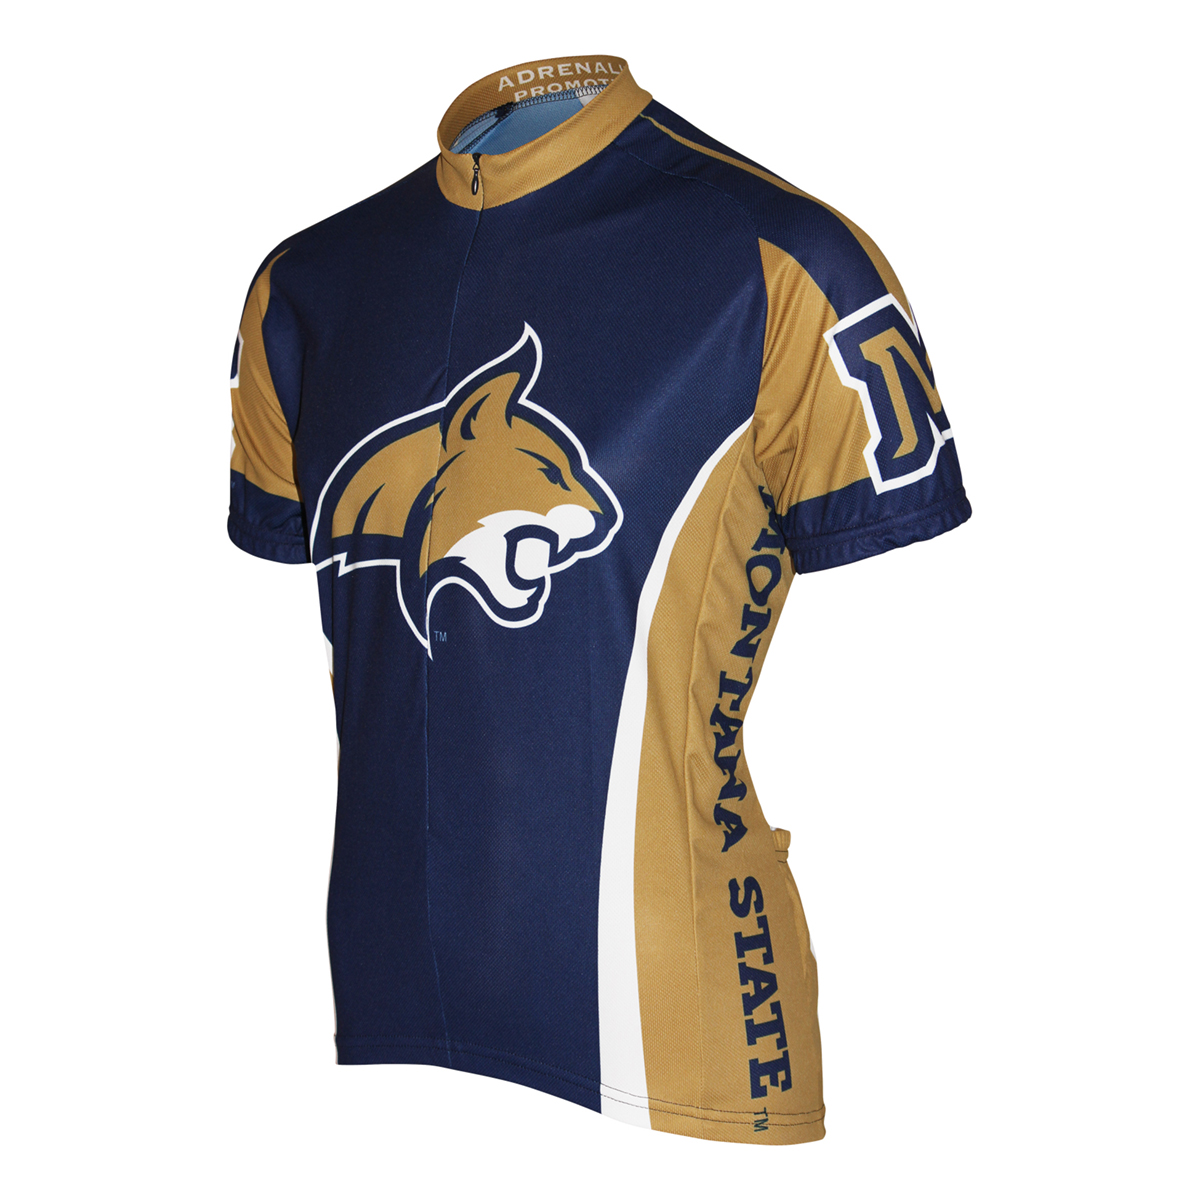 Adrenaline Promotions Montana State University Bobcat Cycling Jersey (Montana State University - XXL)